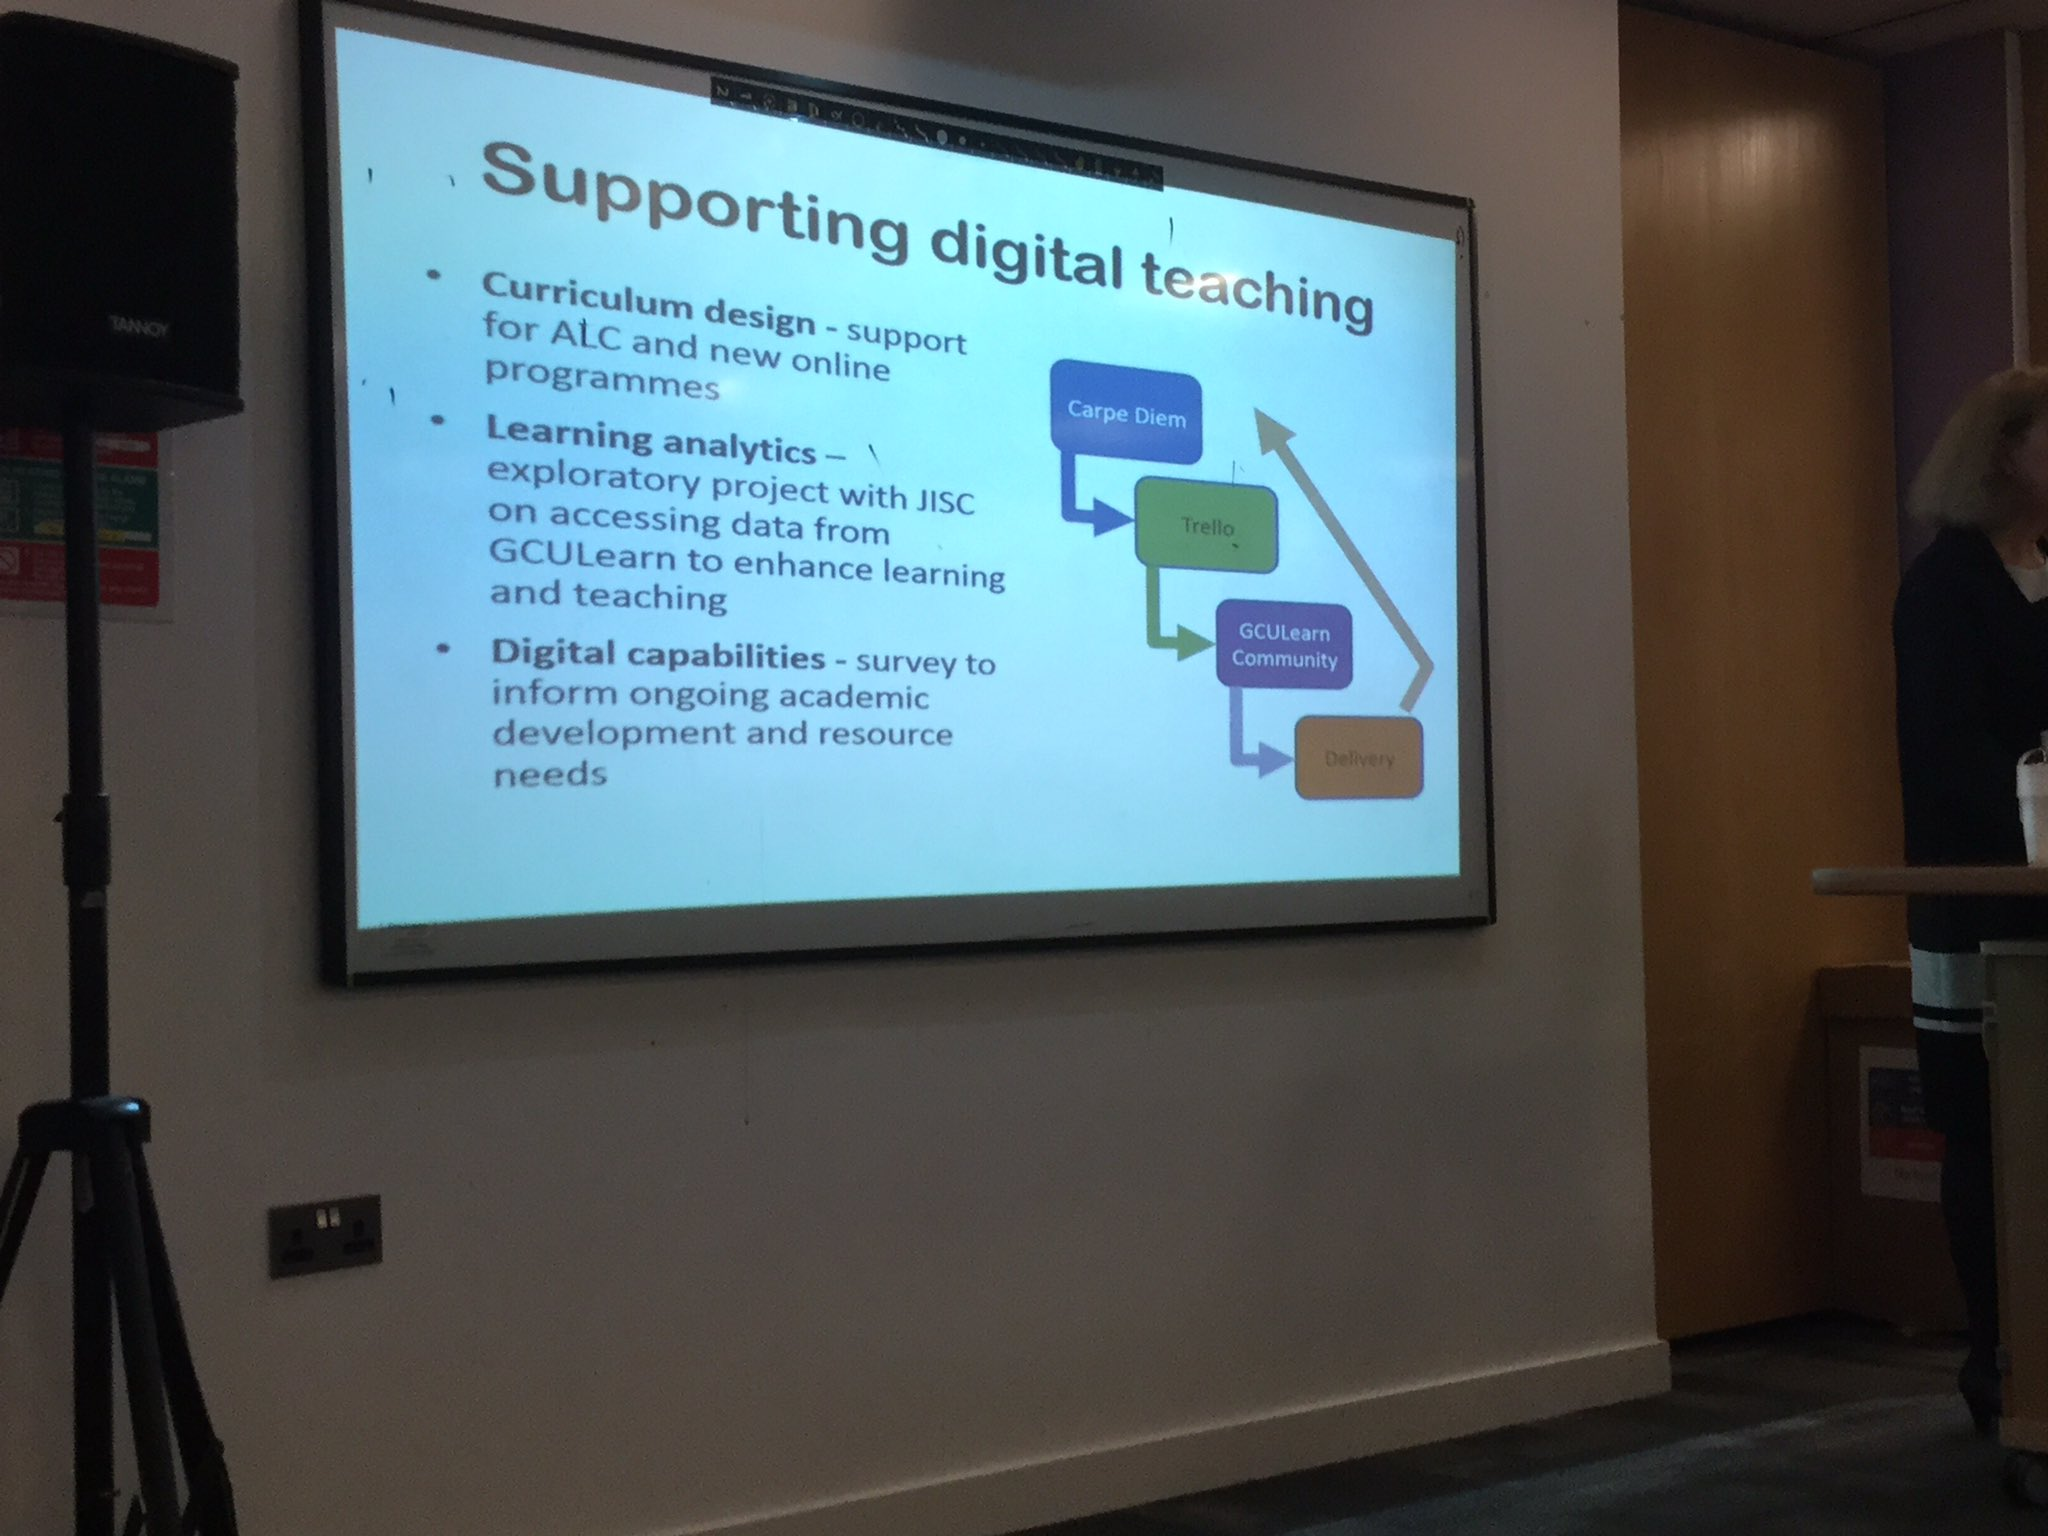 some of the ways digital learning and teaching is being support across the university #LTGCU https://t.co/B65q5FikSA